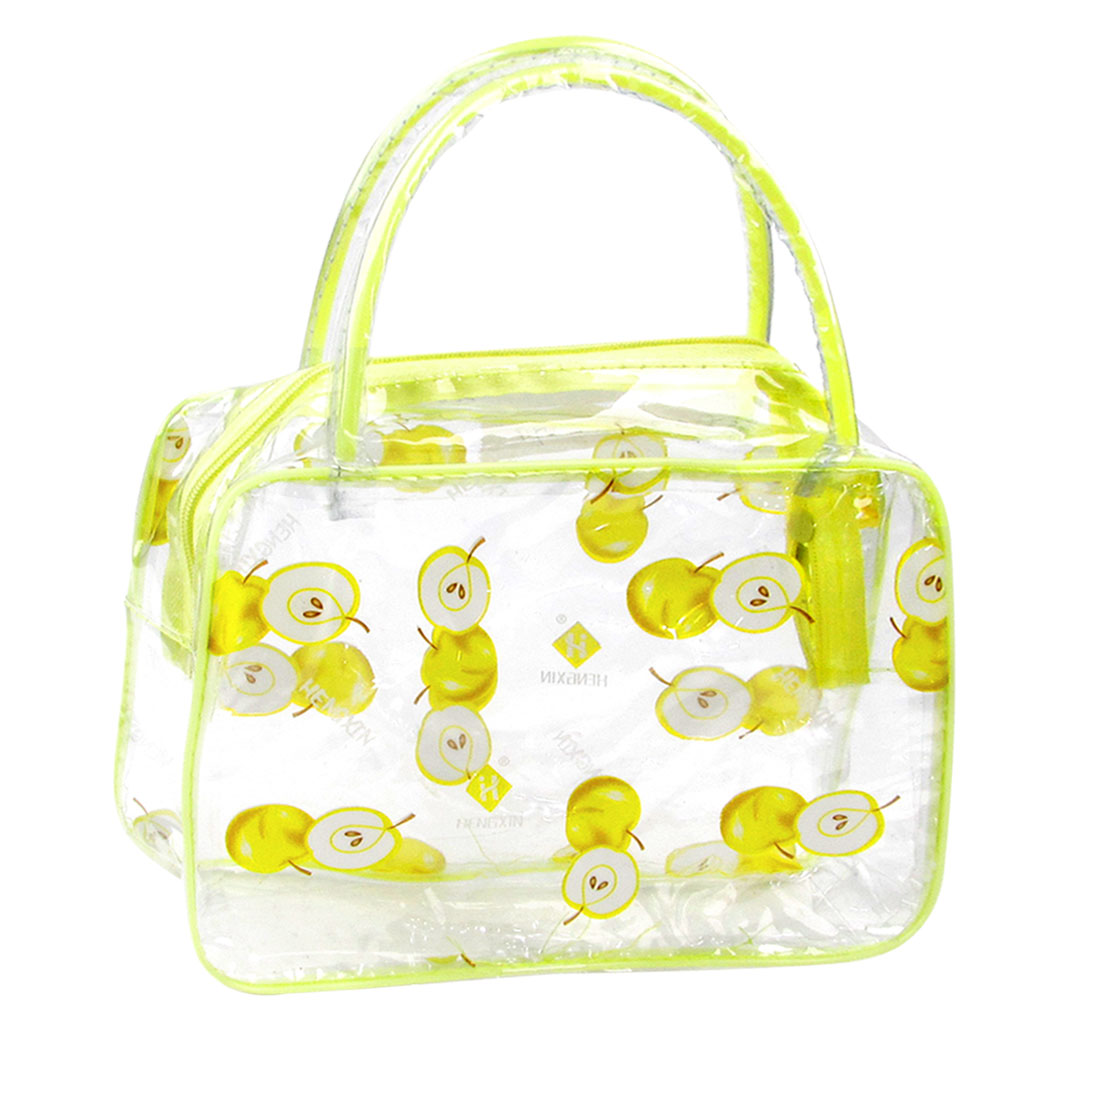 Travel Appple Pattern Makeup Cosmetic Bag Case Light Yellow Clear for Ladies